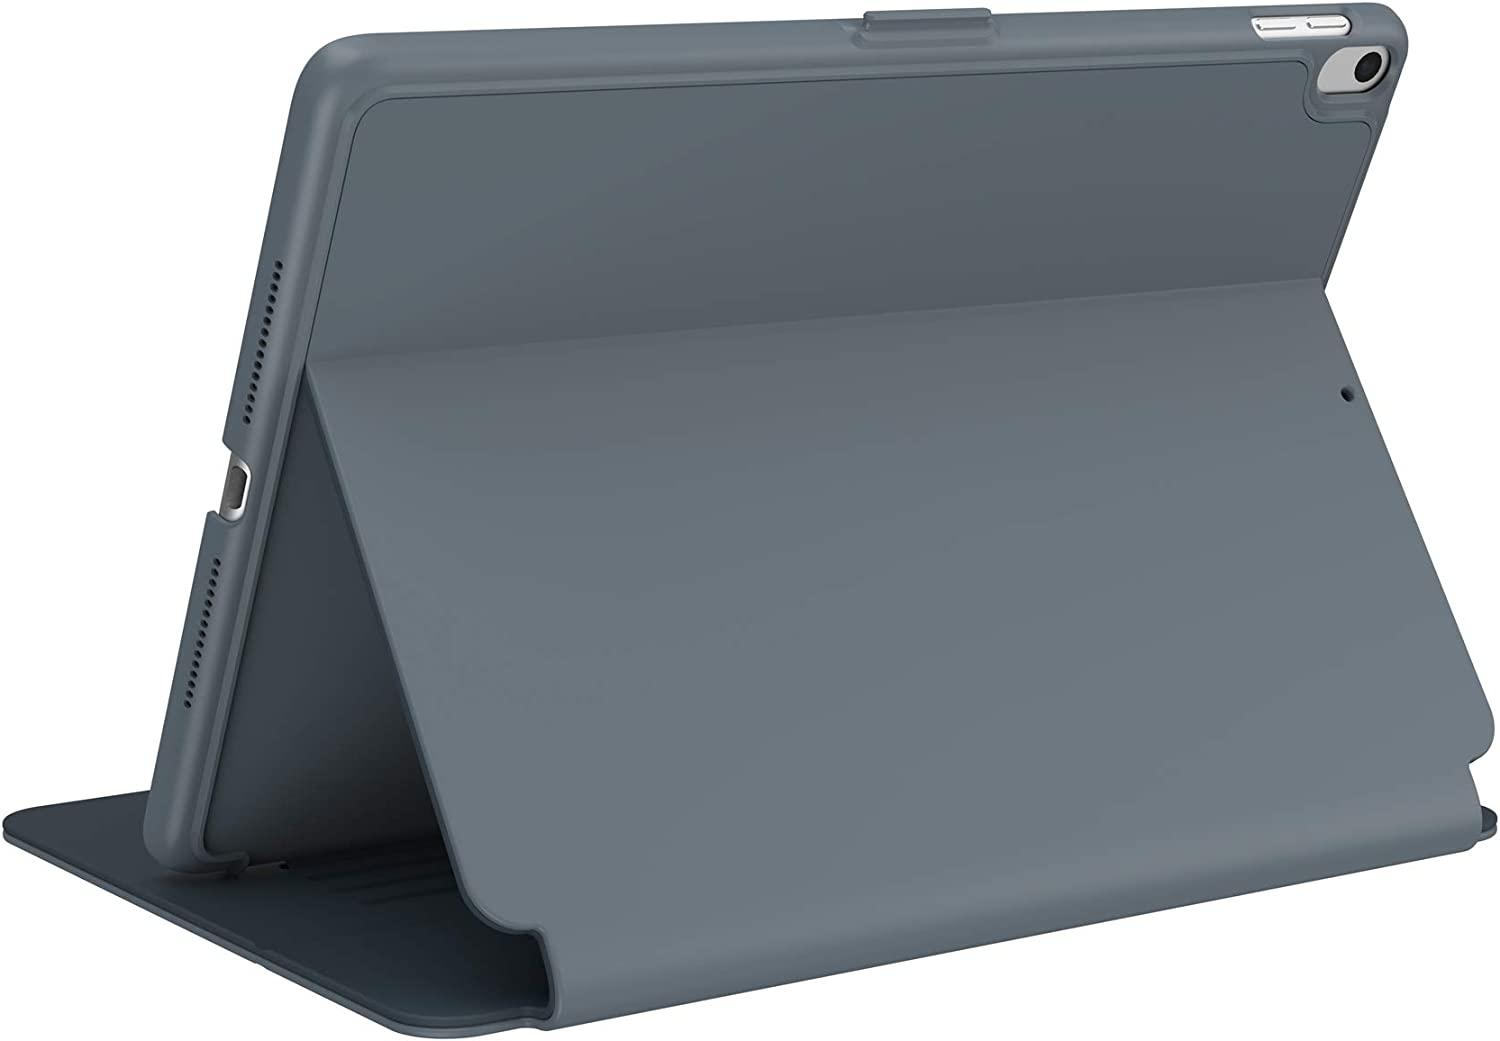 Speck Products BalanceFolio iPad Air (2019) Case (Also fits 10.5-inch iPad Pro), , Stormy Grey/Charcoal Grey (128045-5999)